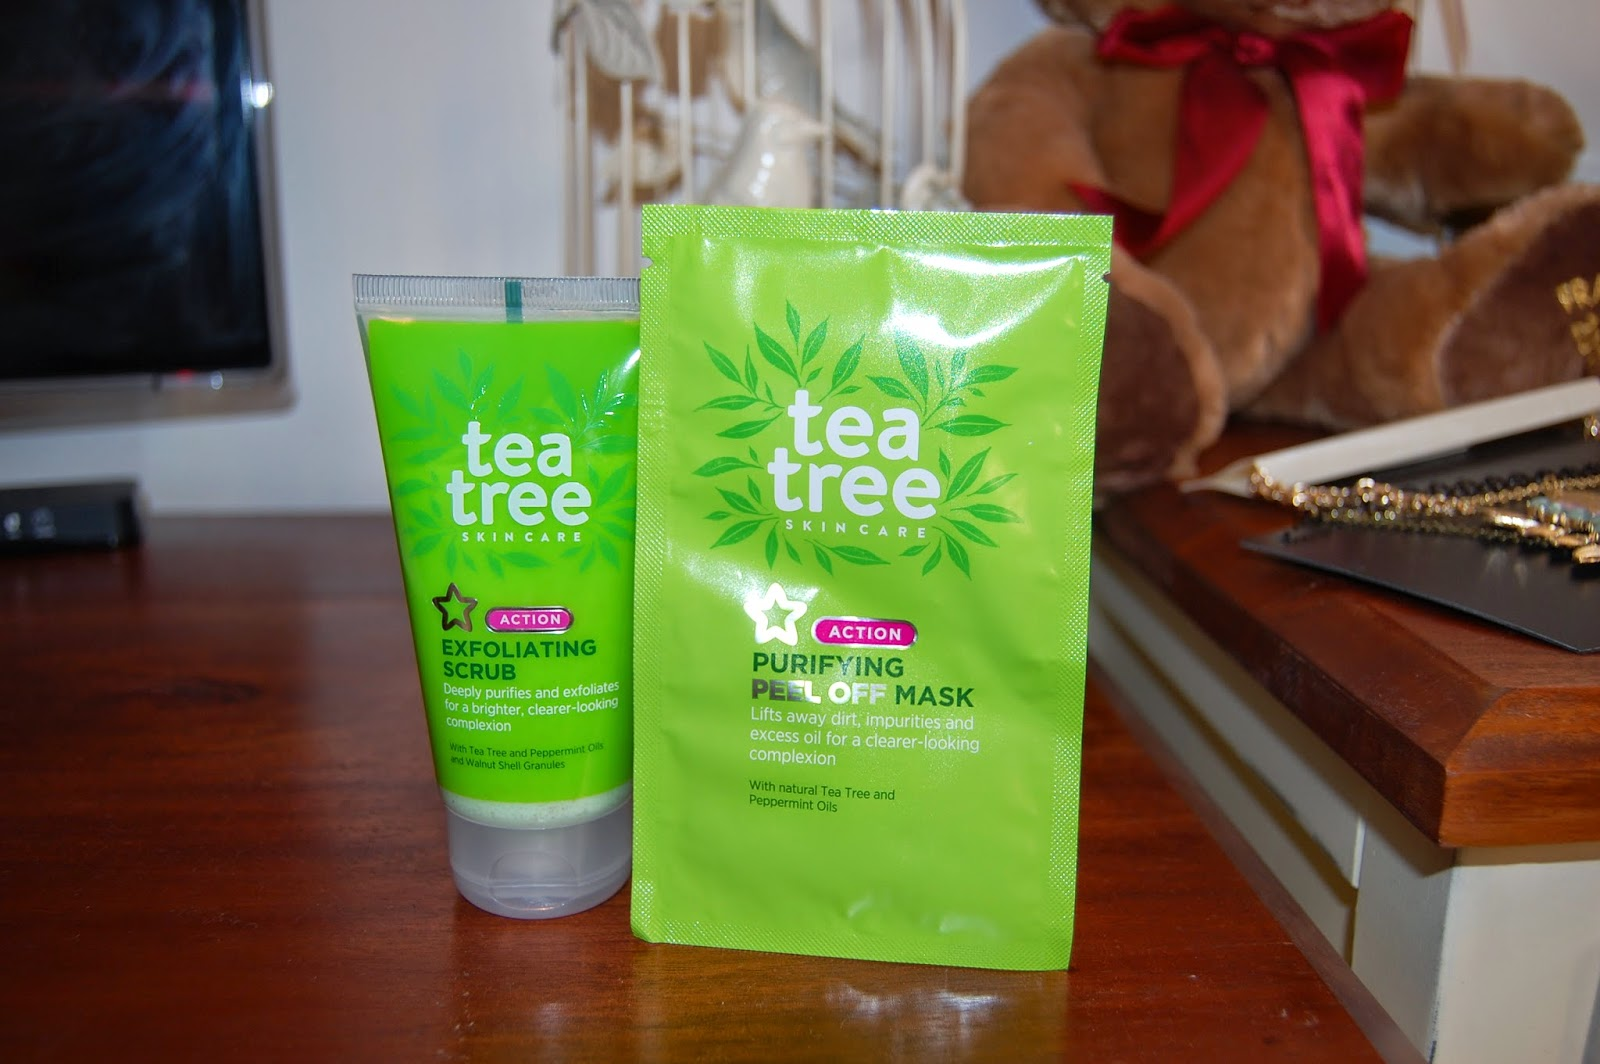 tea tree, skincare, skin care, facial scrub, face mask